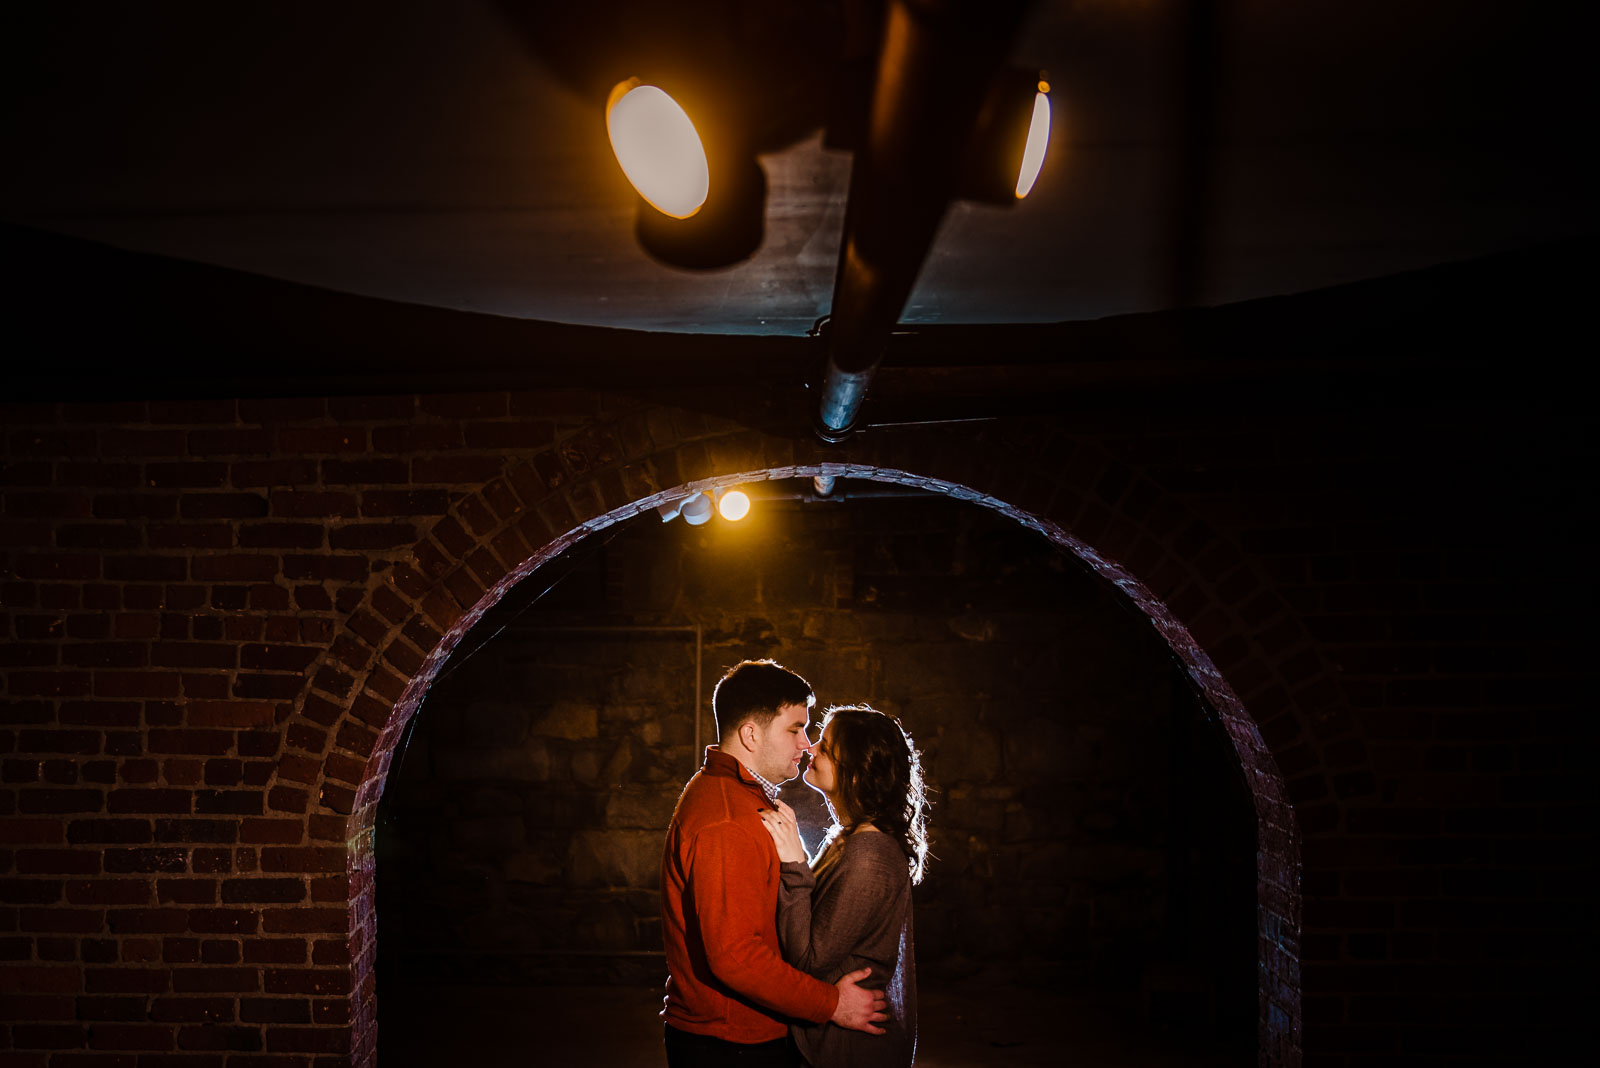 Couple's portrait inside an arch